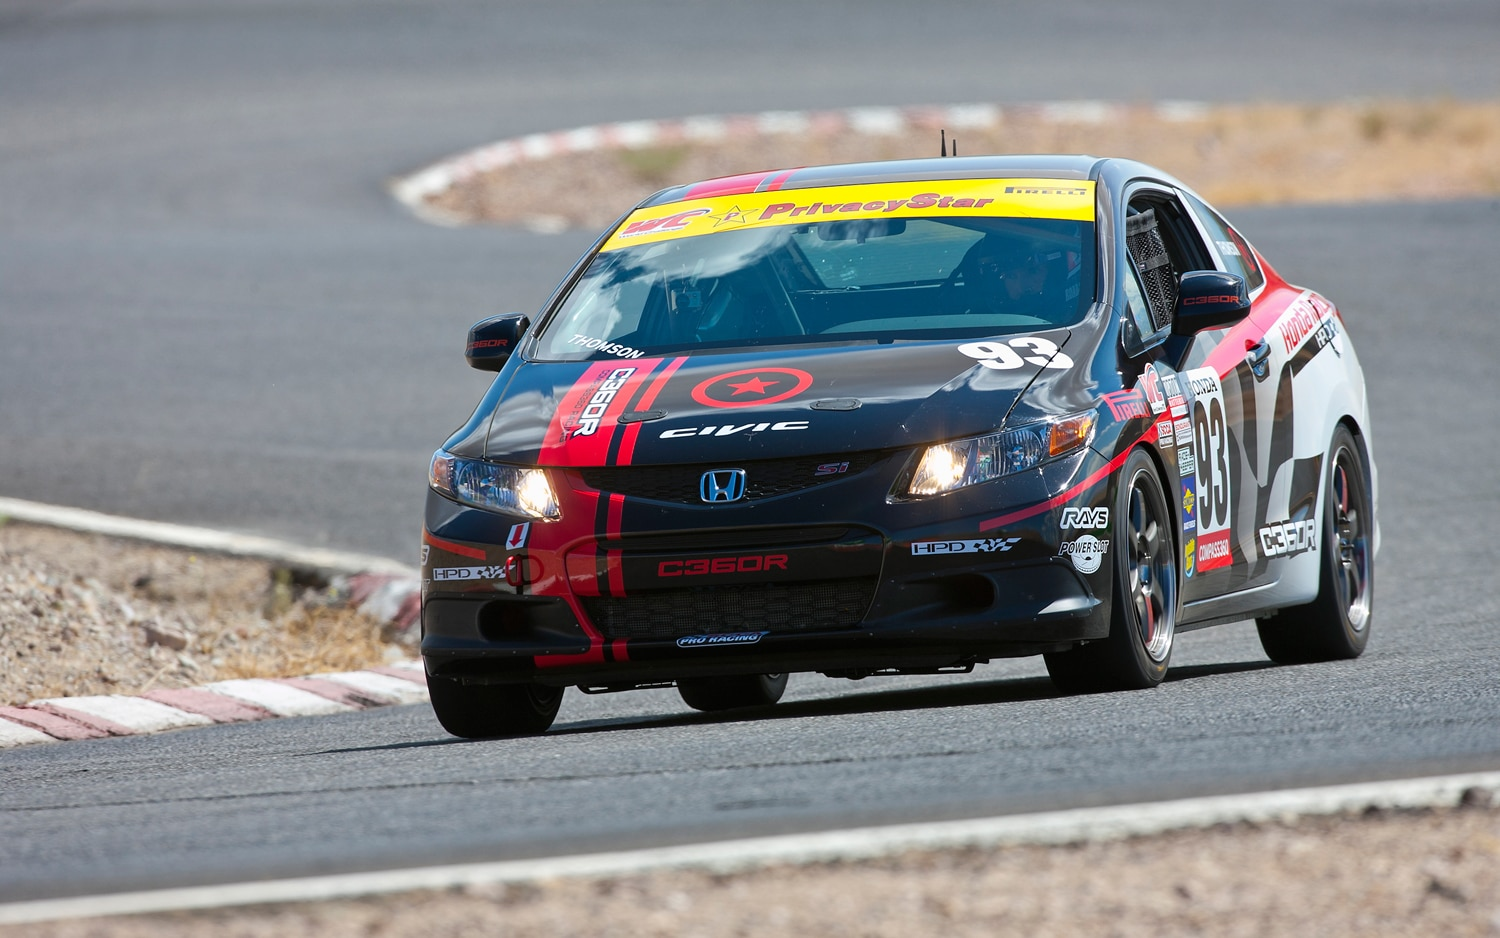 2012 Honda Civic Si Race Car HPD Front Left View1